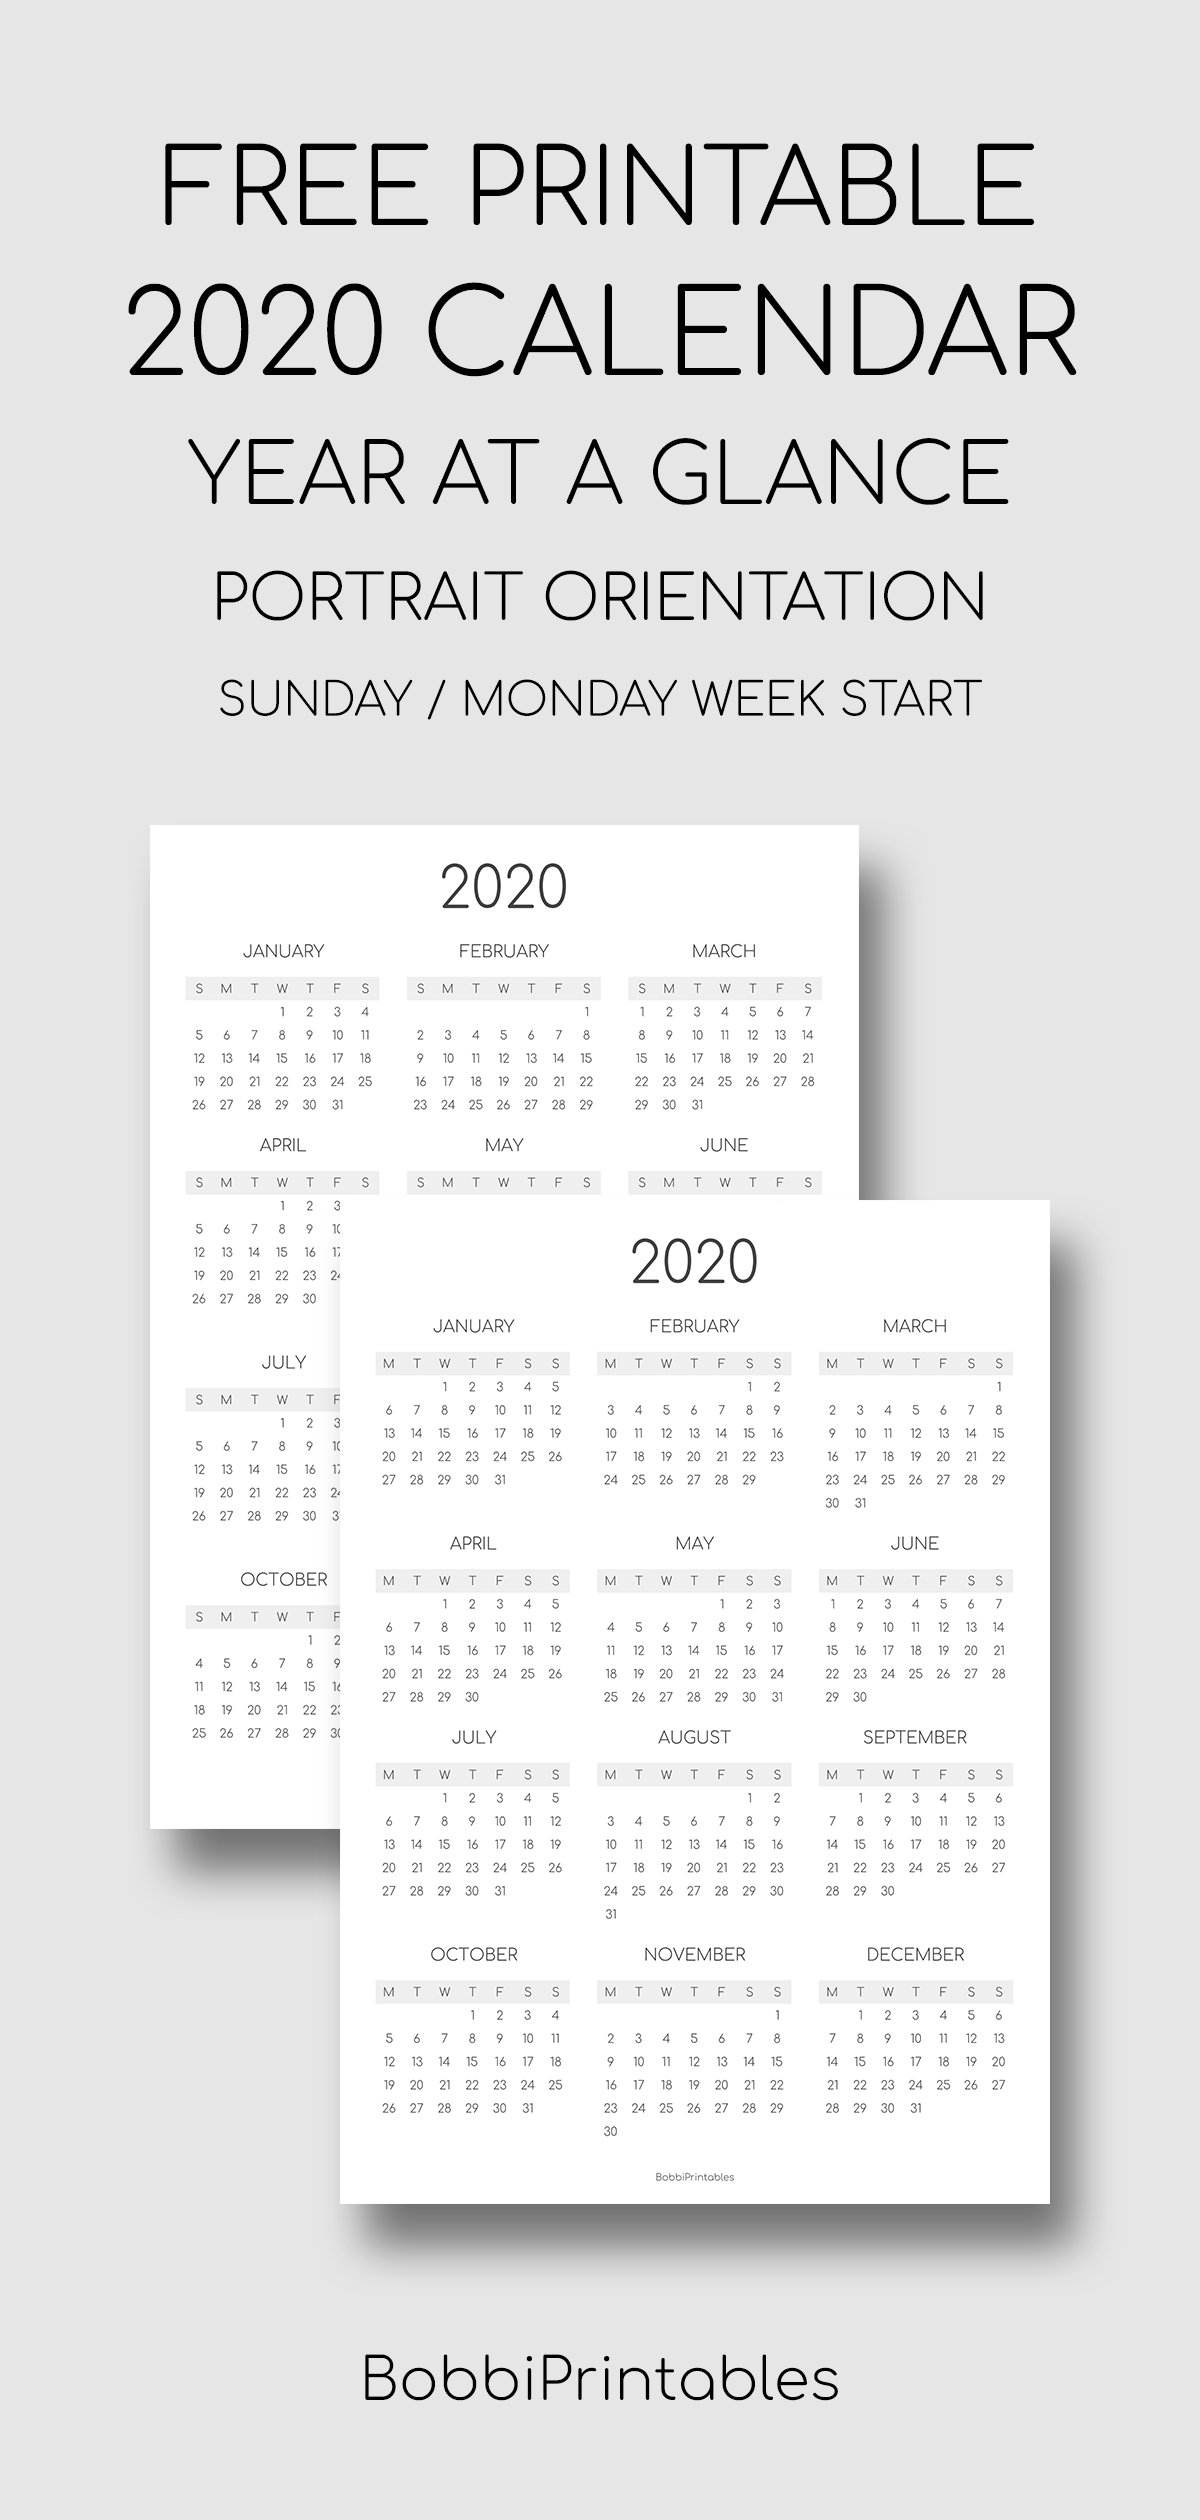 Free Printable 2020 Year At A Glance Calendar - Portrait intended for 2020 Year At A Glance